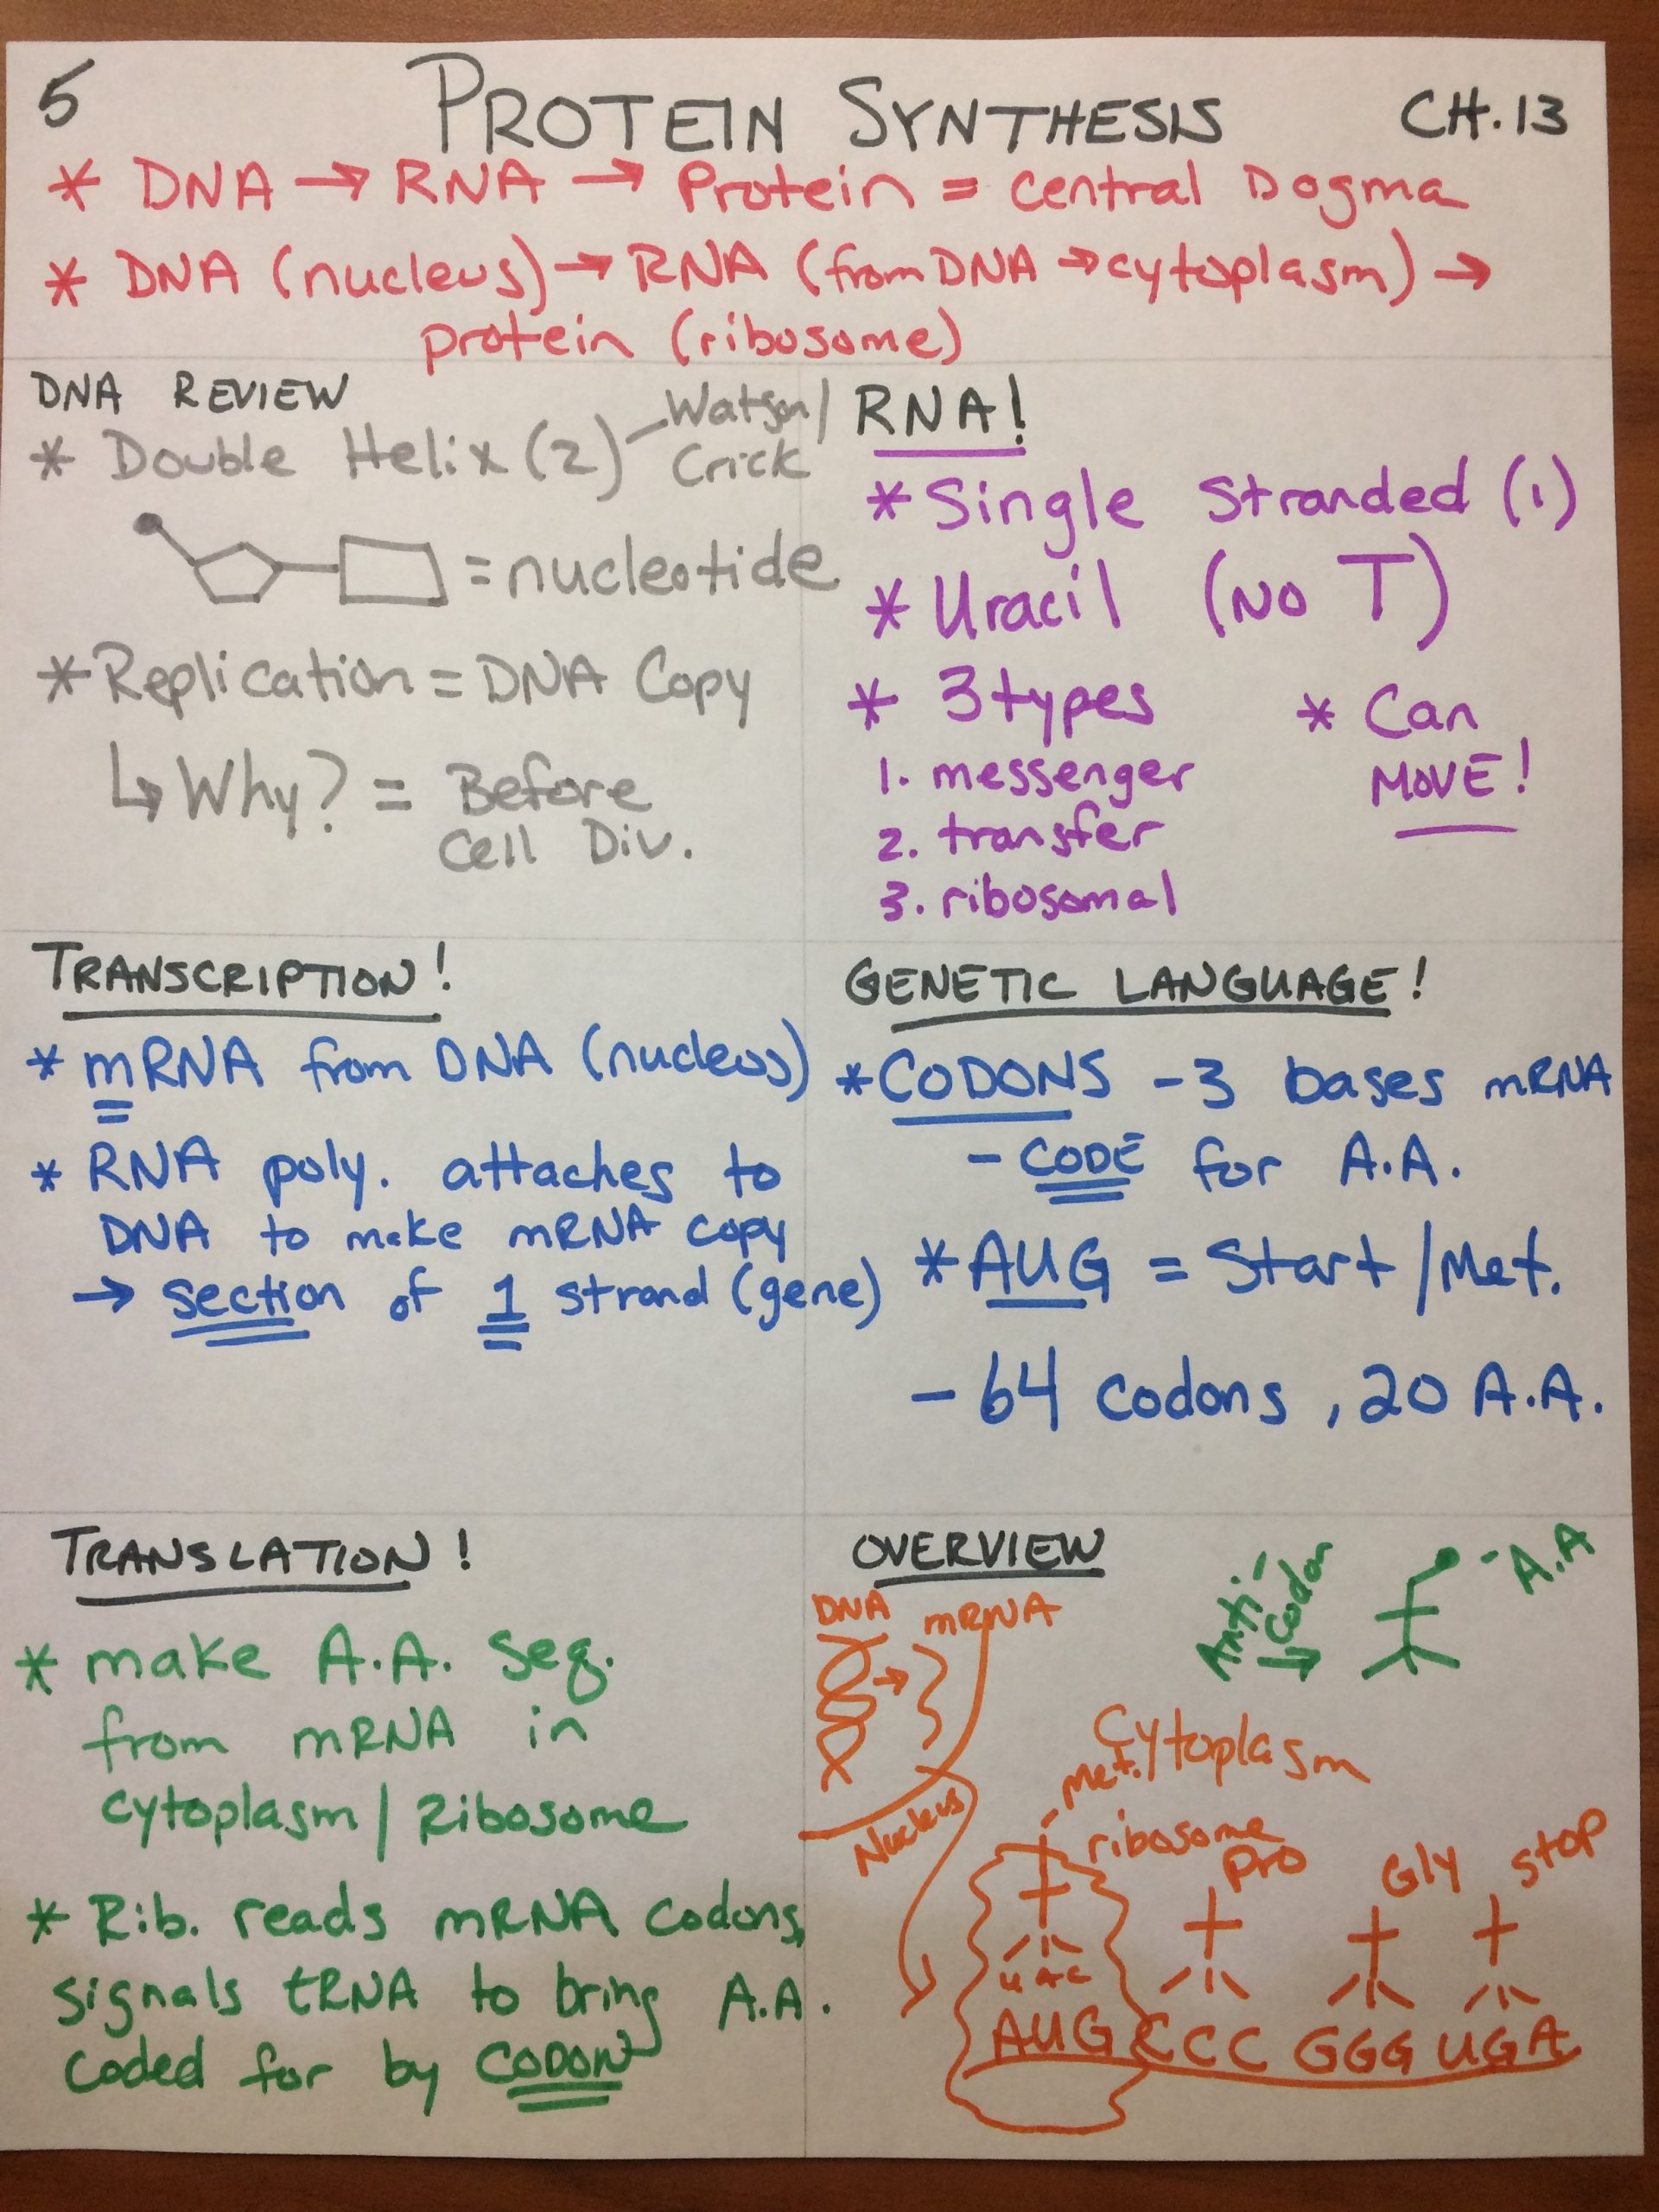 Protein Synthesis Review Worksheet Pap Dna and Protein Synthesis Flashes Biology